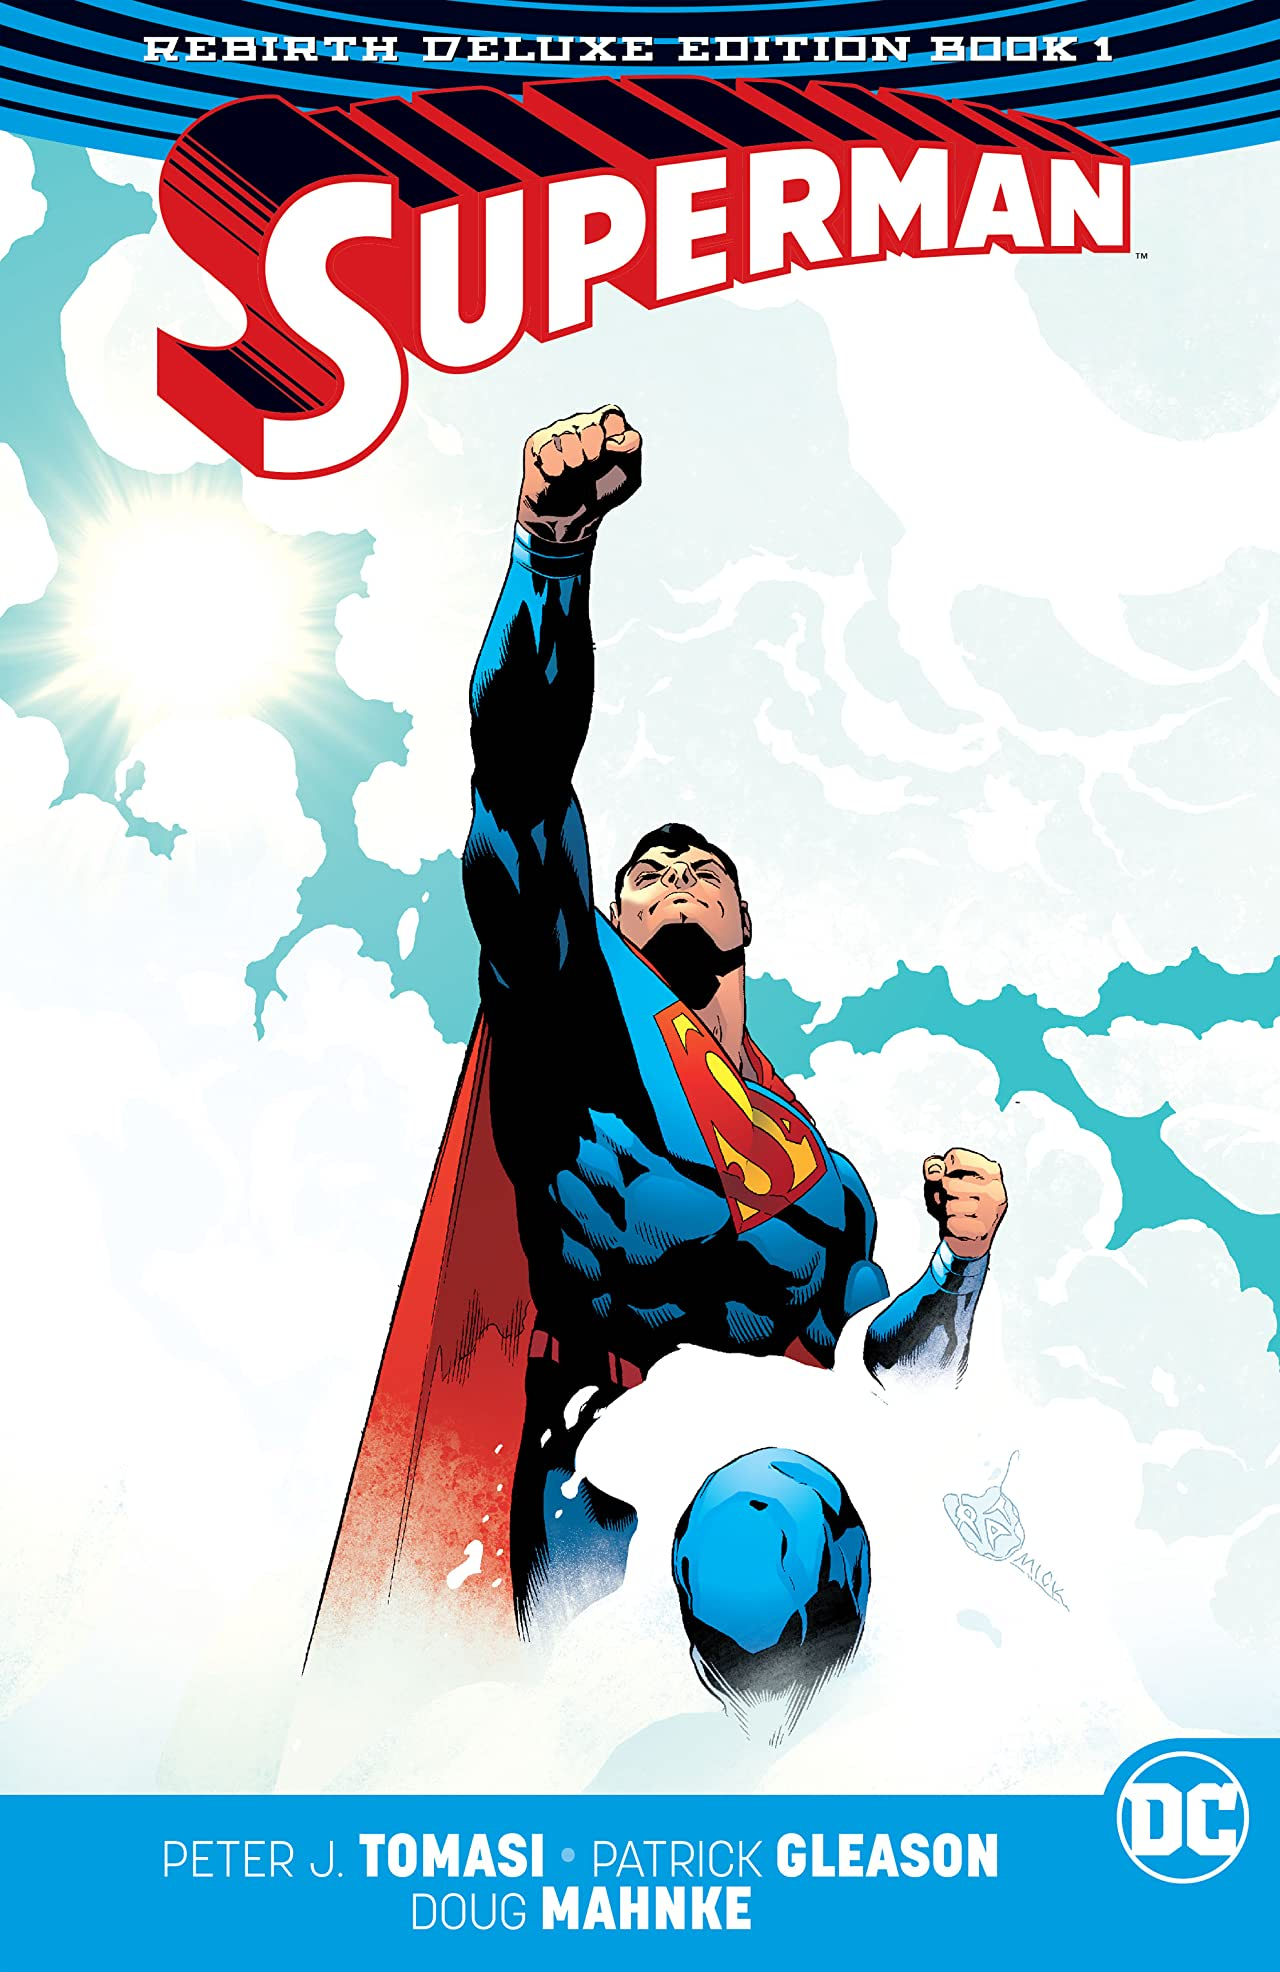 Superman (2016-2018): The Rebirth - Deluxe Edition: Book 1